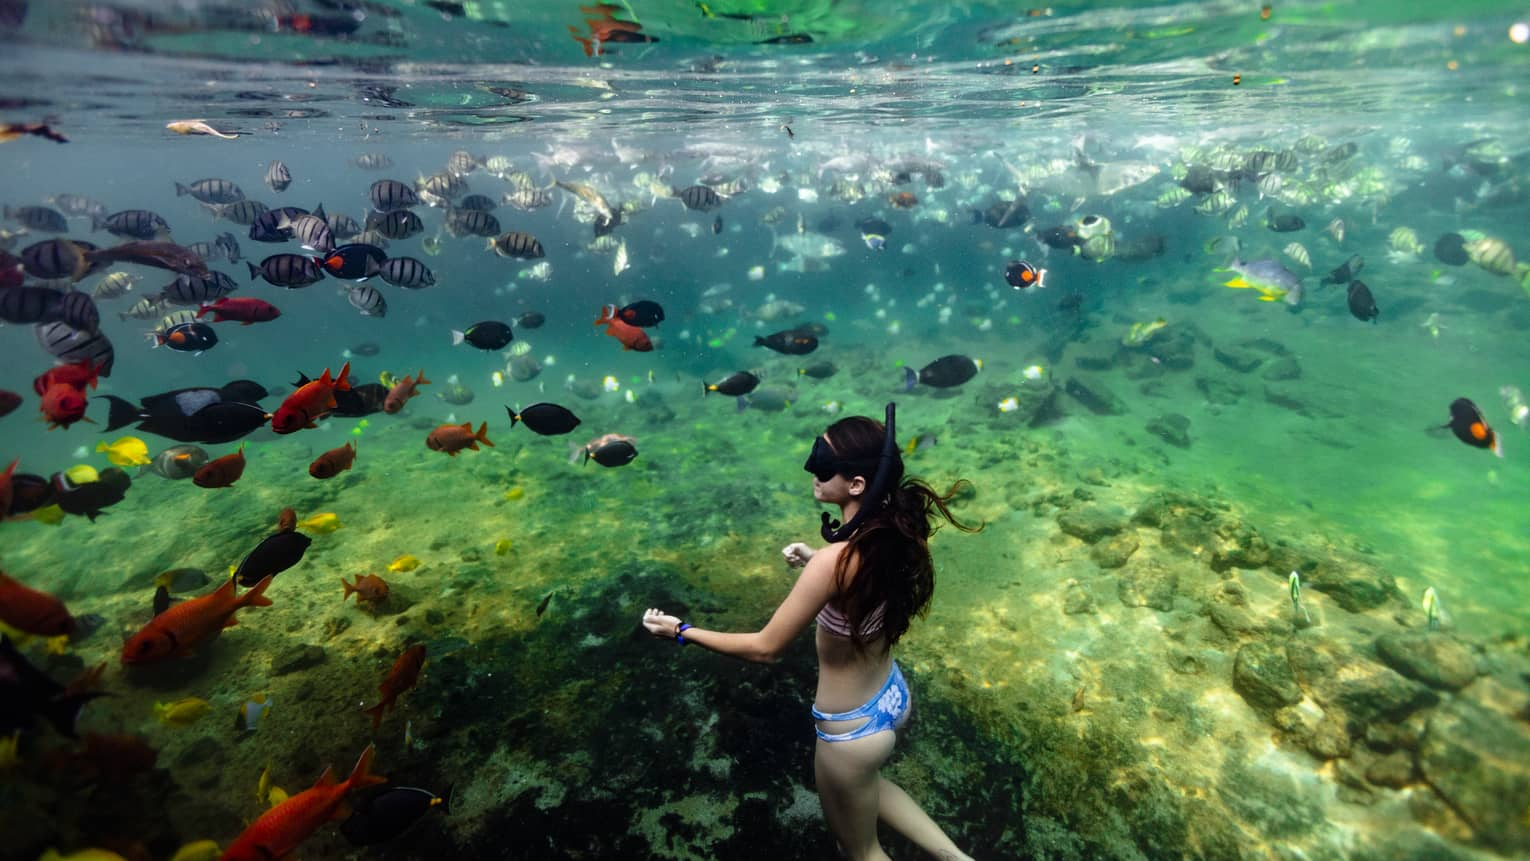 A woman snorkels with a school of fish